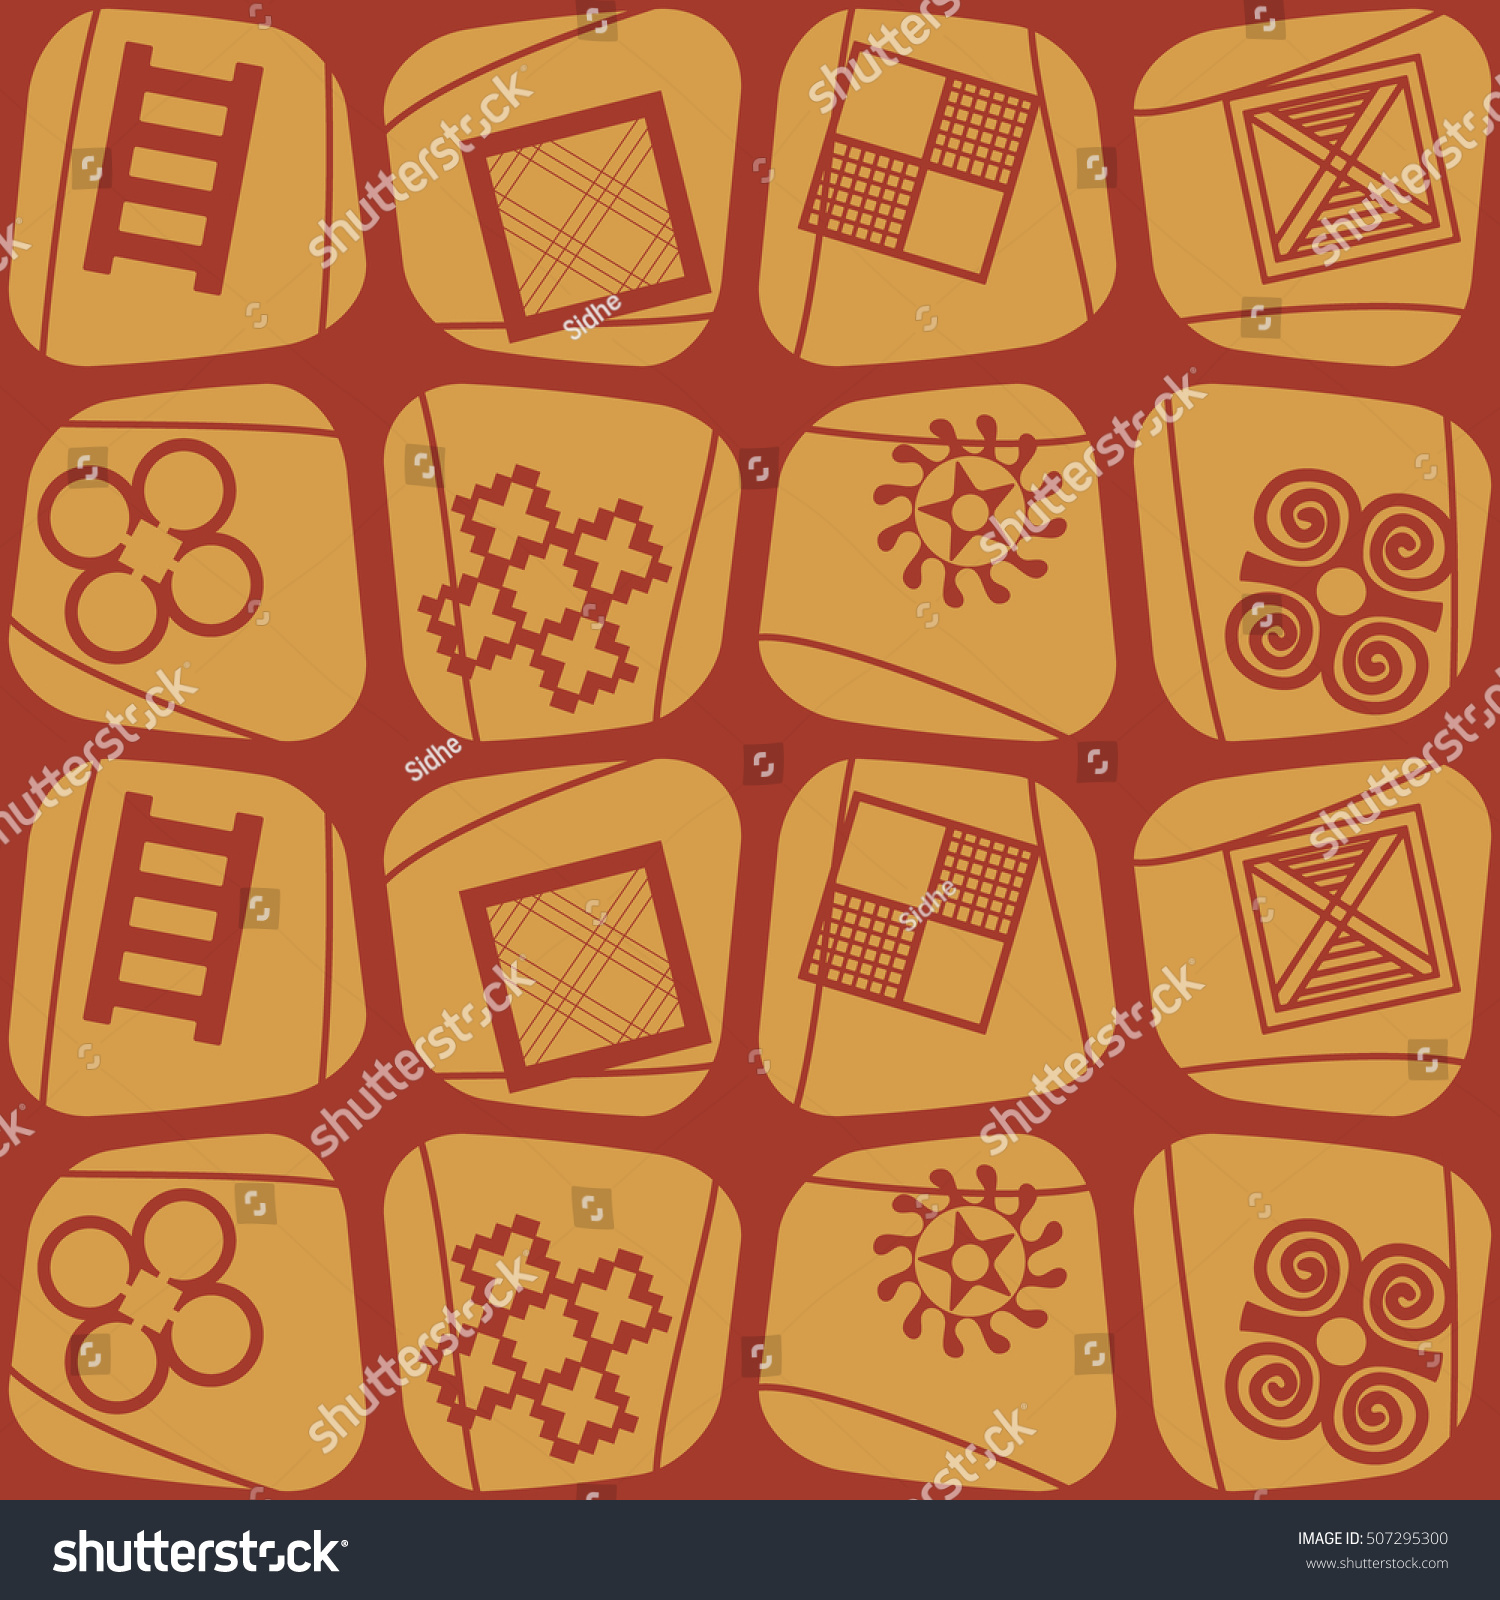 Seamless pattern adinkra symbols your design stock vector seamless pattern with adinkra symbols for your design biocorpaavc Images